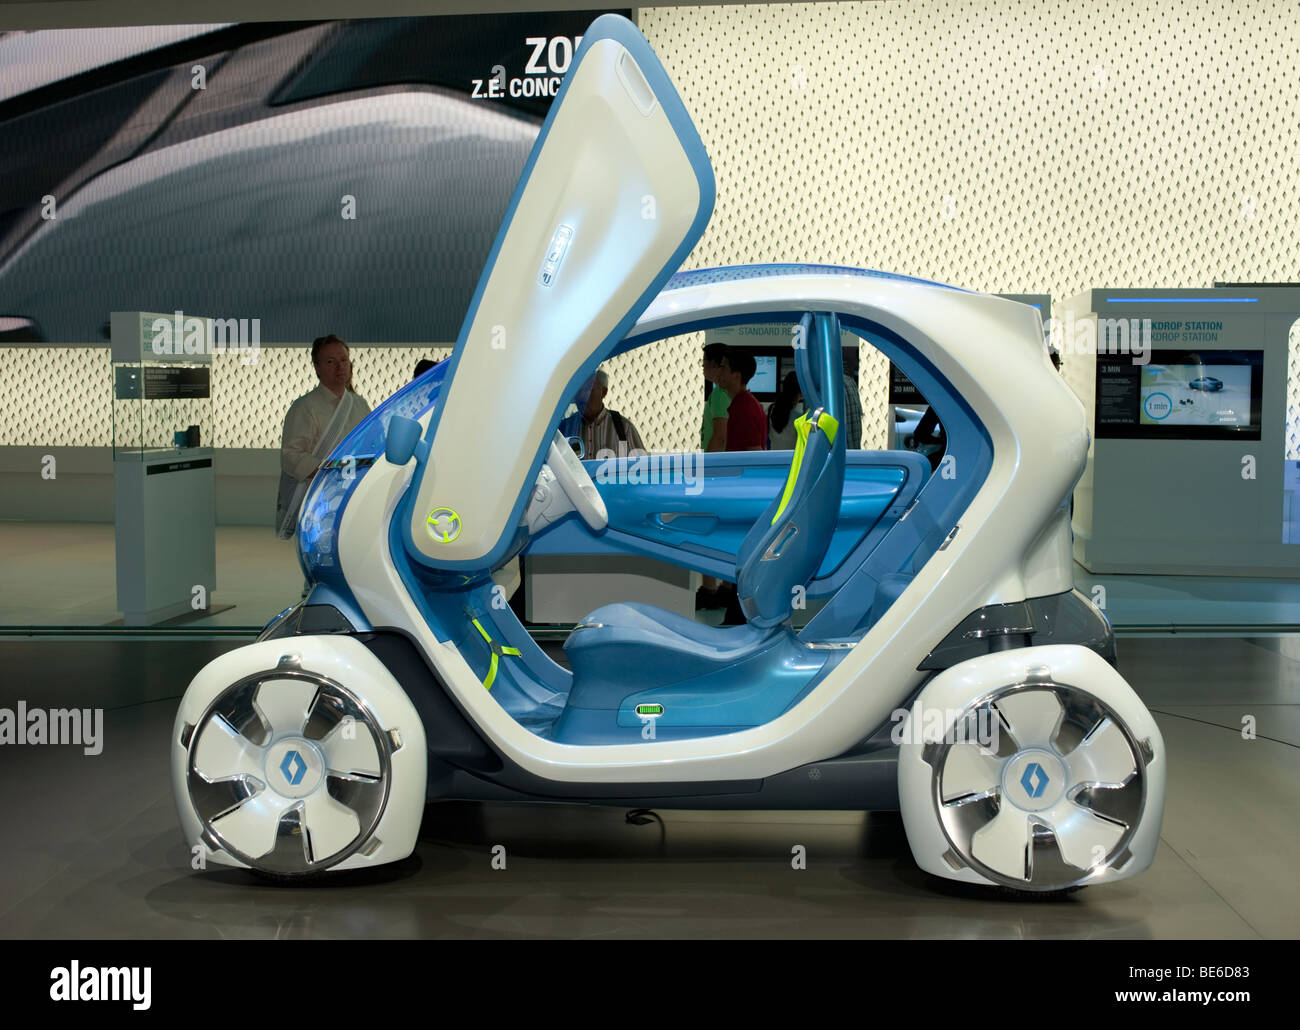 renault twizy ze concept electric car at frankfurt motor show 2009 stock photo royalty free. Black Bedroom Furniture Sets. Home Design Ideas